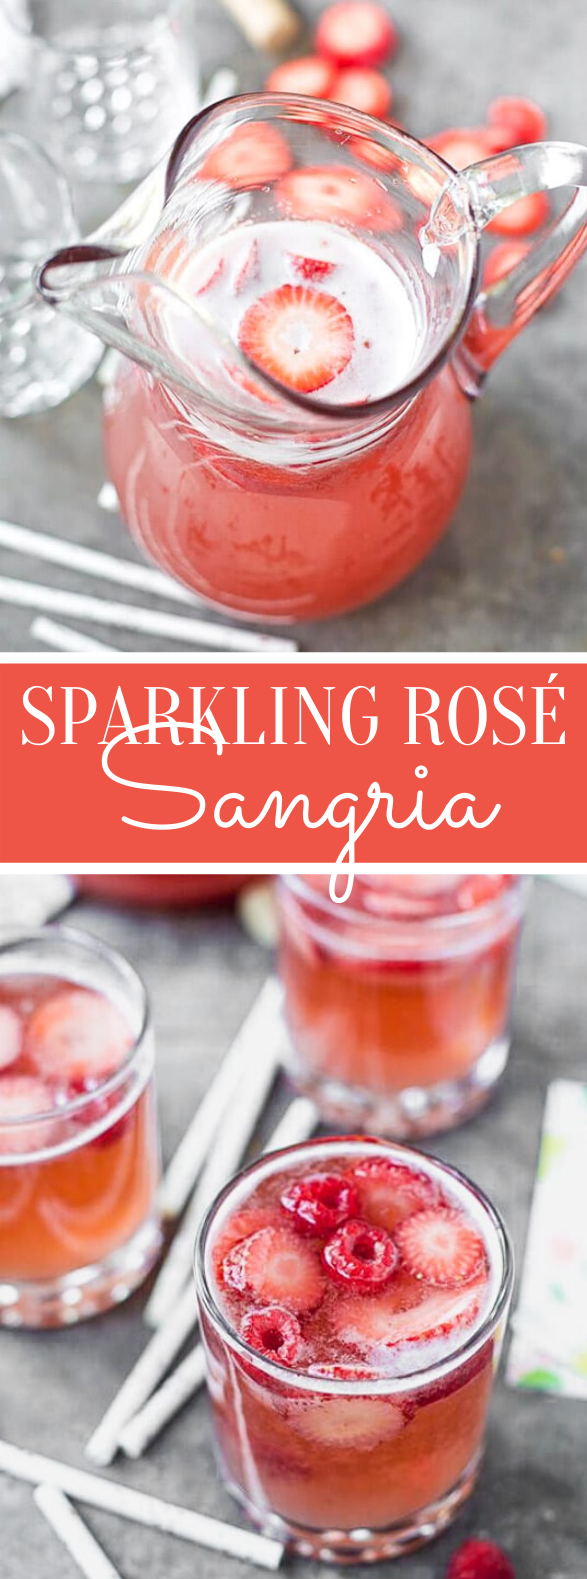 SPARKLING ROSÉ SANGRIA #drinks #cocktails